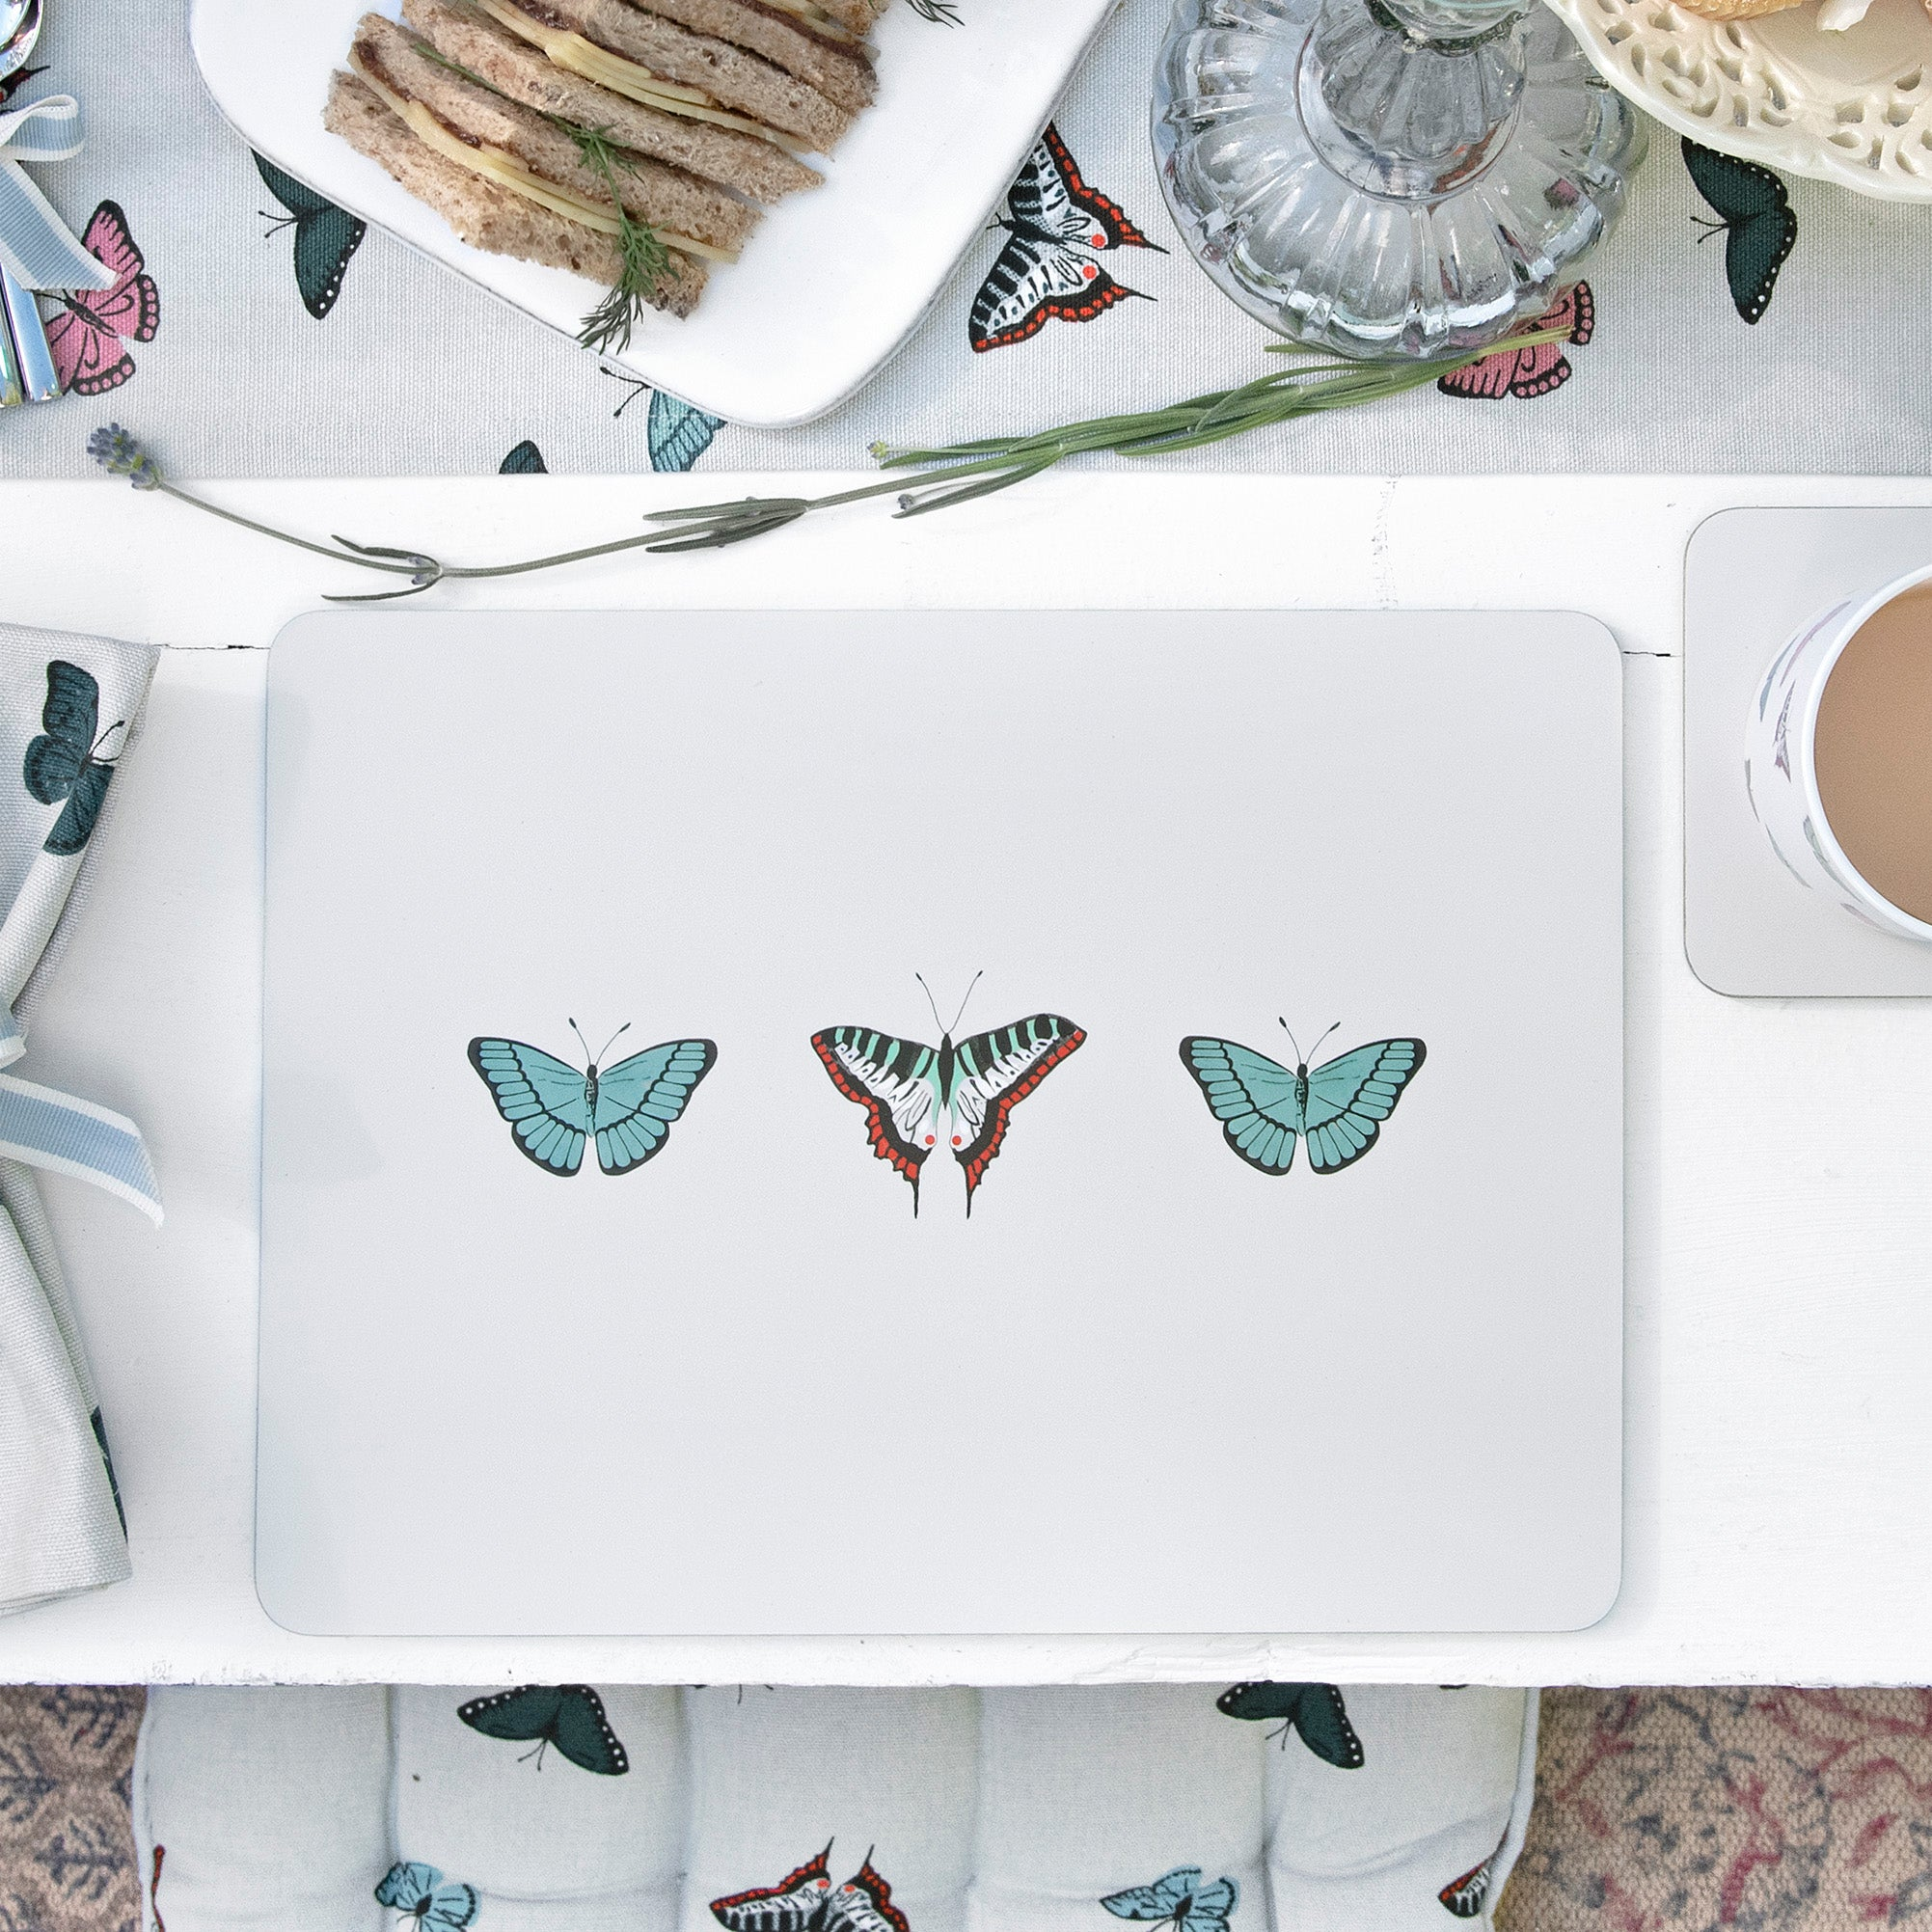 A set of four Butterflies Grey Placemats by Sophie Allport.